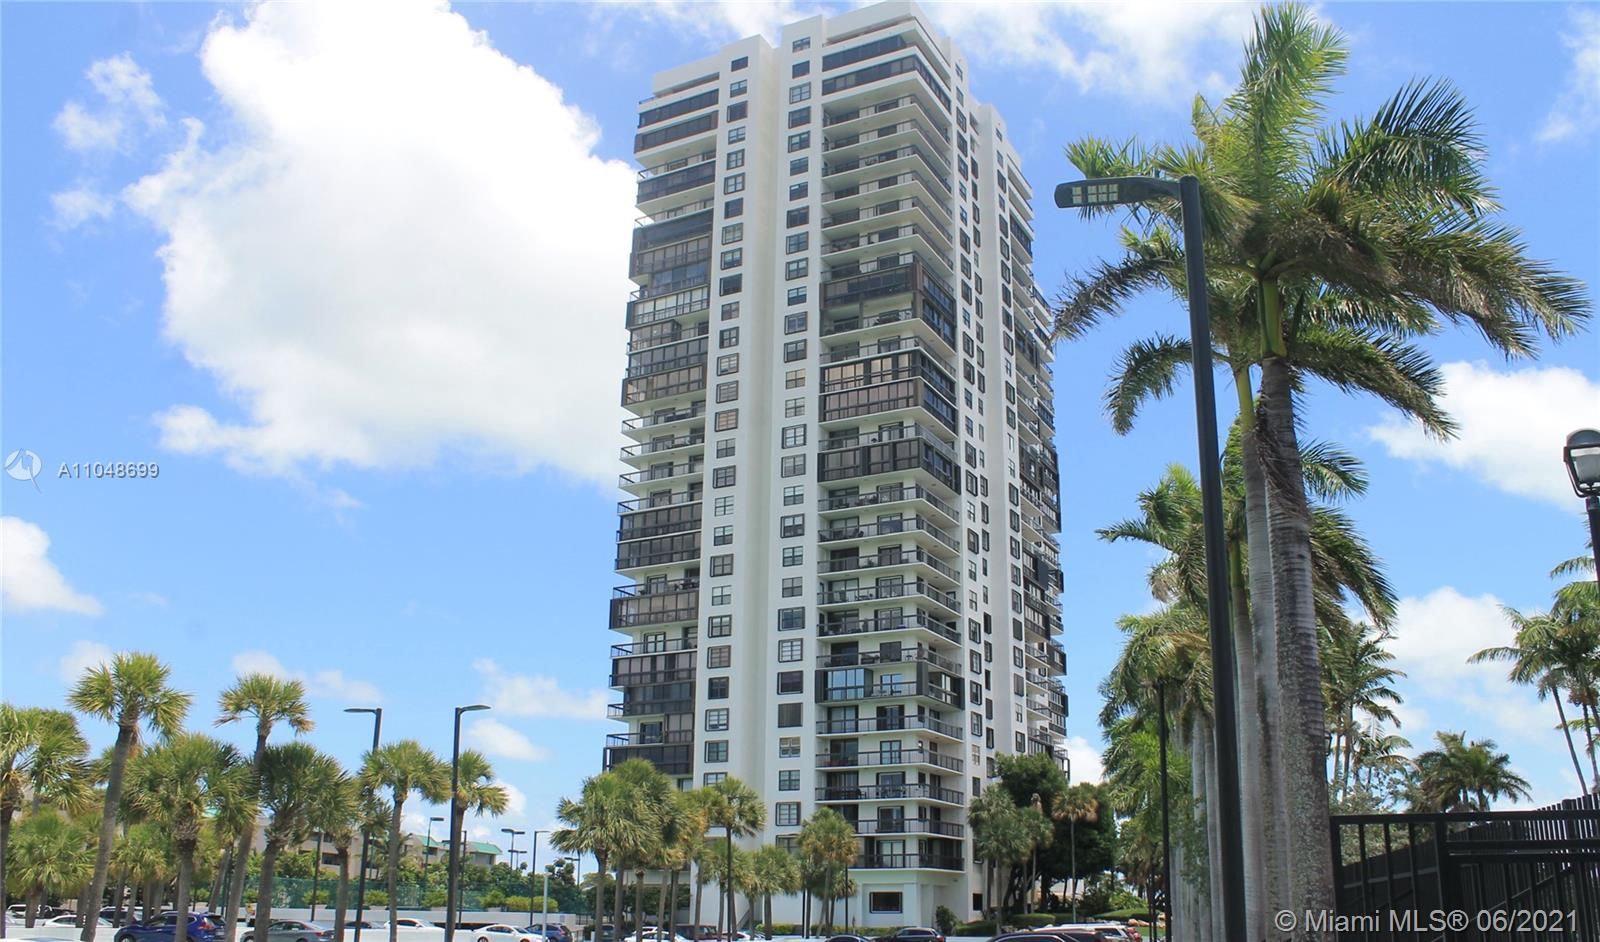 This approx. 1800 Sqft. 2 Bed/2 Bath unit is located in the quiet part of Brickell, easy access to US-1, I-95, & Old Cutler Rd. Move-In ready, this unit features breathtaking unobstructed views of Biscayne Bay and the city of Miami, Large Bedrooms, Walk-in Closets, Marble Floors, Walk-in Laundry Room and more. Brickell Bay Club is a luxurious full-service building close to the best restaurants, schools, and beaches. Enjoy the amenities including Pool, Gym, Spa, Dog Park, Tennis Courts, Racket Ball Courts, Clubroom, Ballroom, Kids Playroom, Convenience Store, 24/7 Valet, & 24/7 Security.